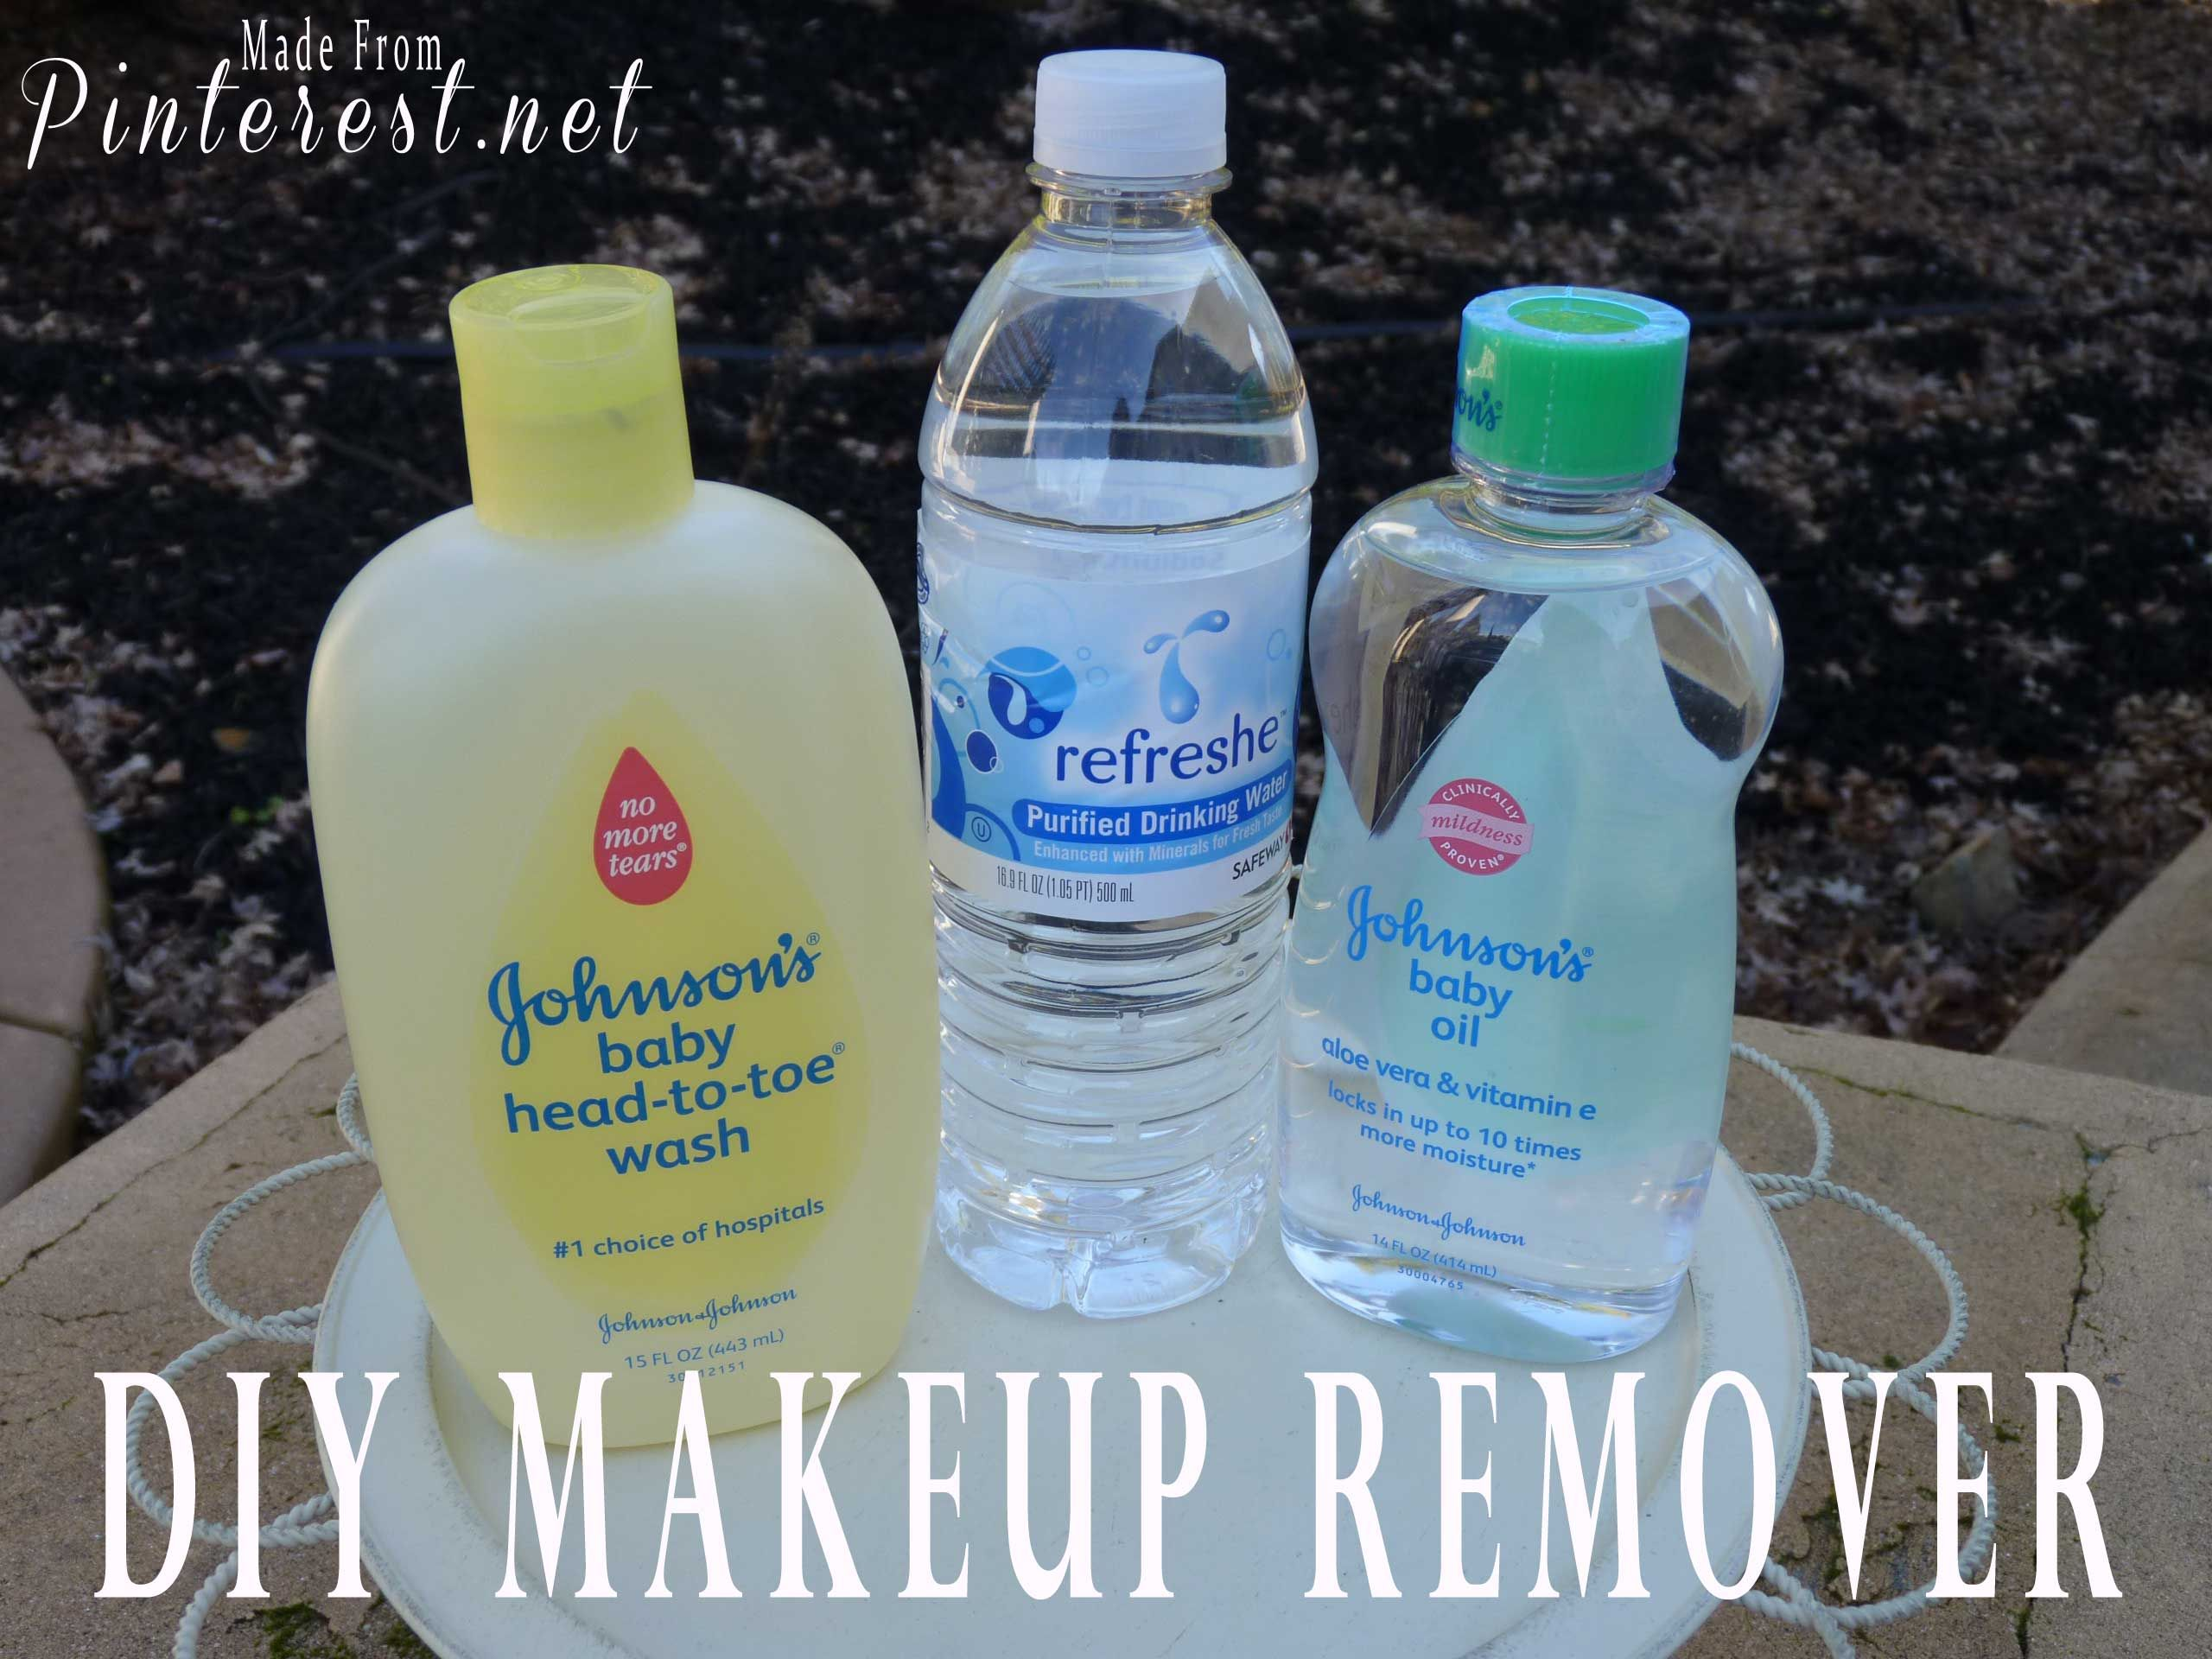 DIY Makeup Remover | Baby oil, Baby body and Diy makeup remover